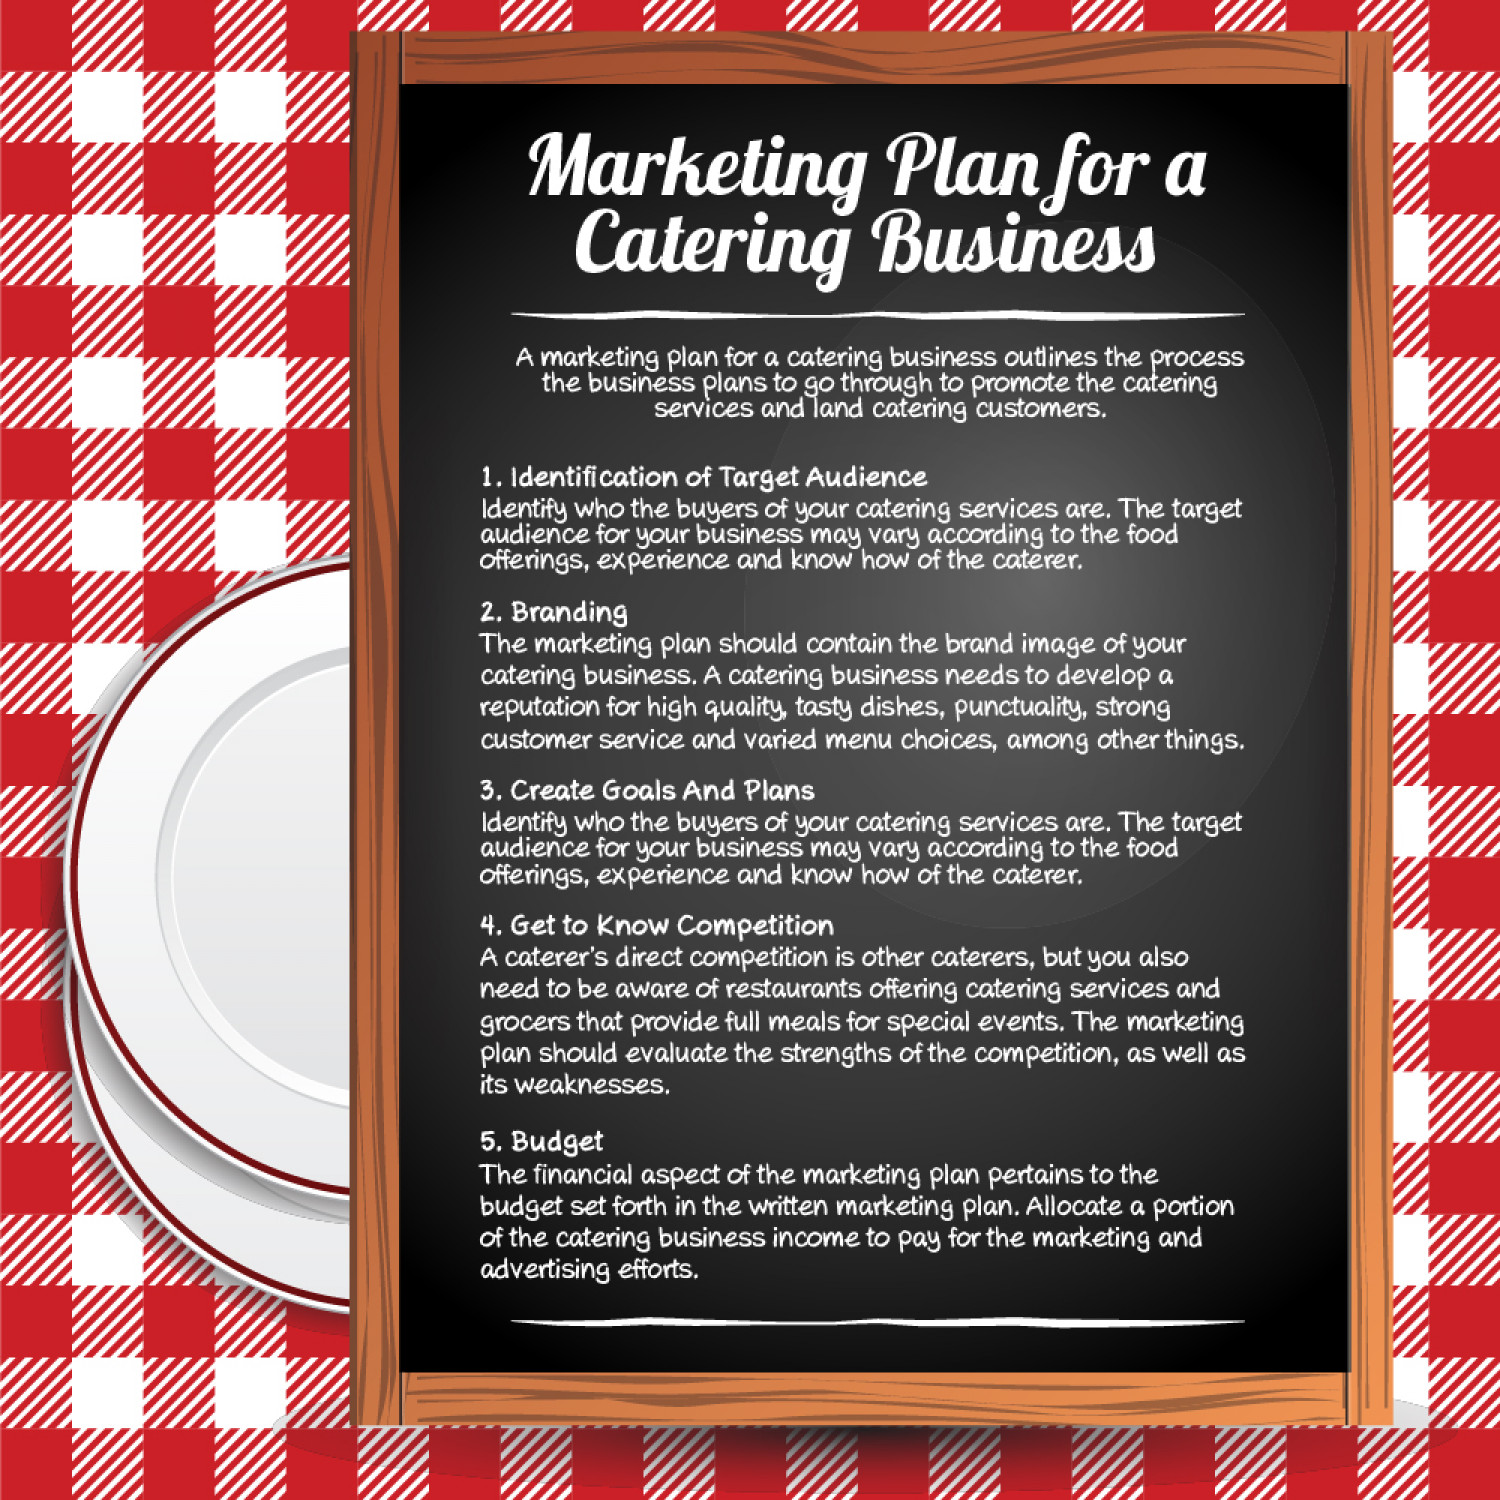 catering and marketing Many caterers feel that they don't have free time to devote to a writing a catering marketing plan this article explains why certain successful catering businesses set aside time to work up an achievable catering marketing plan.